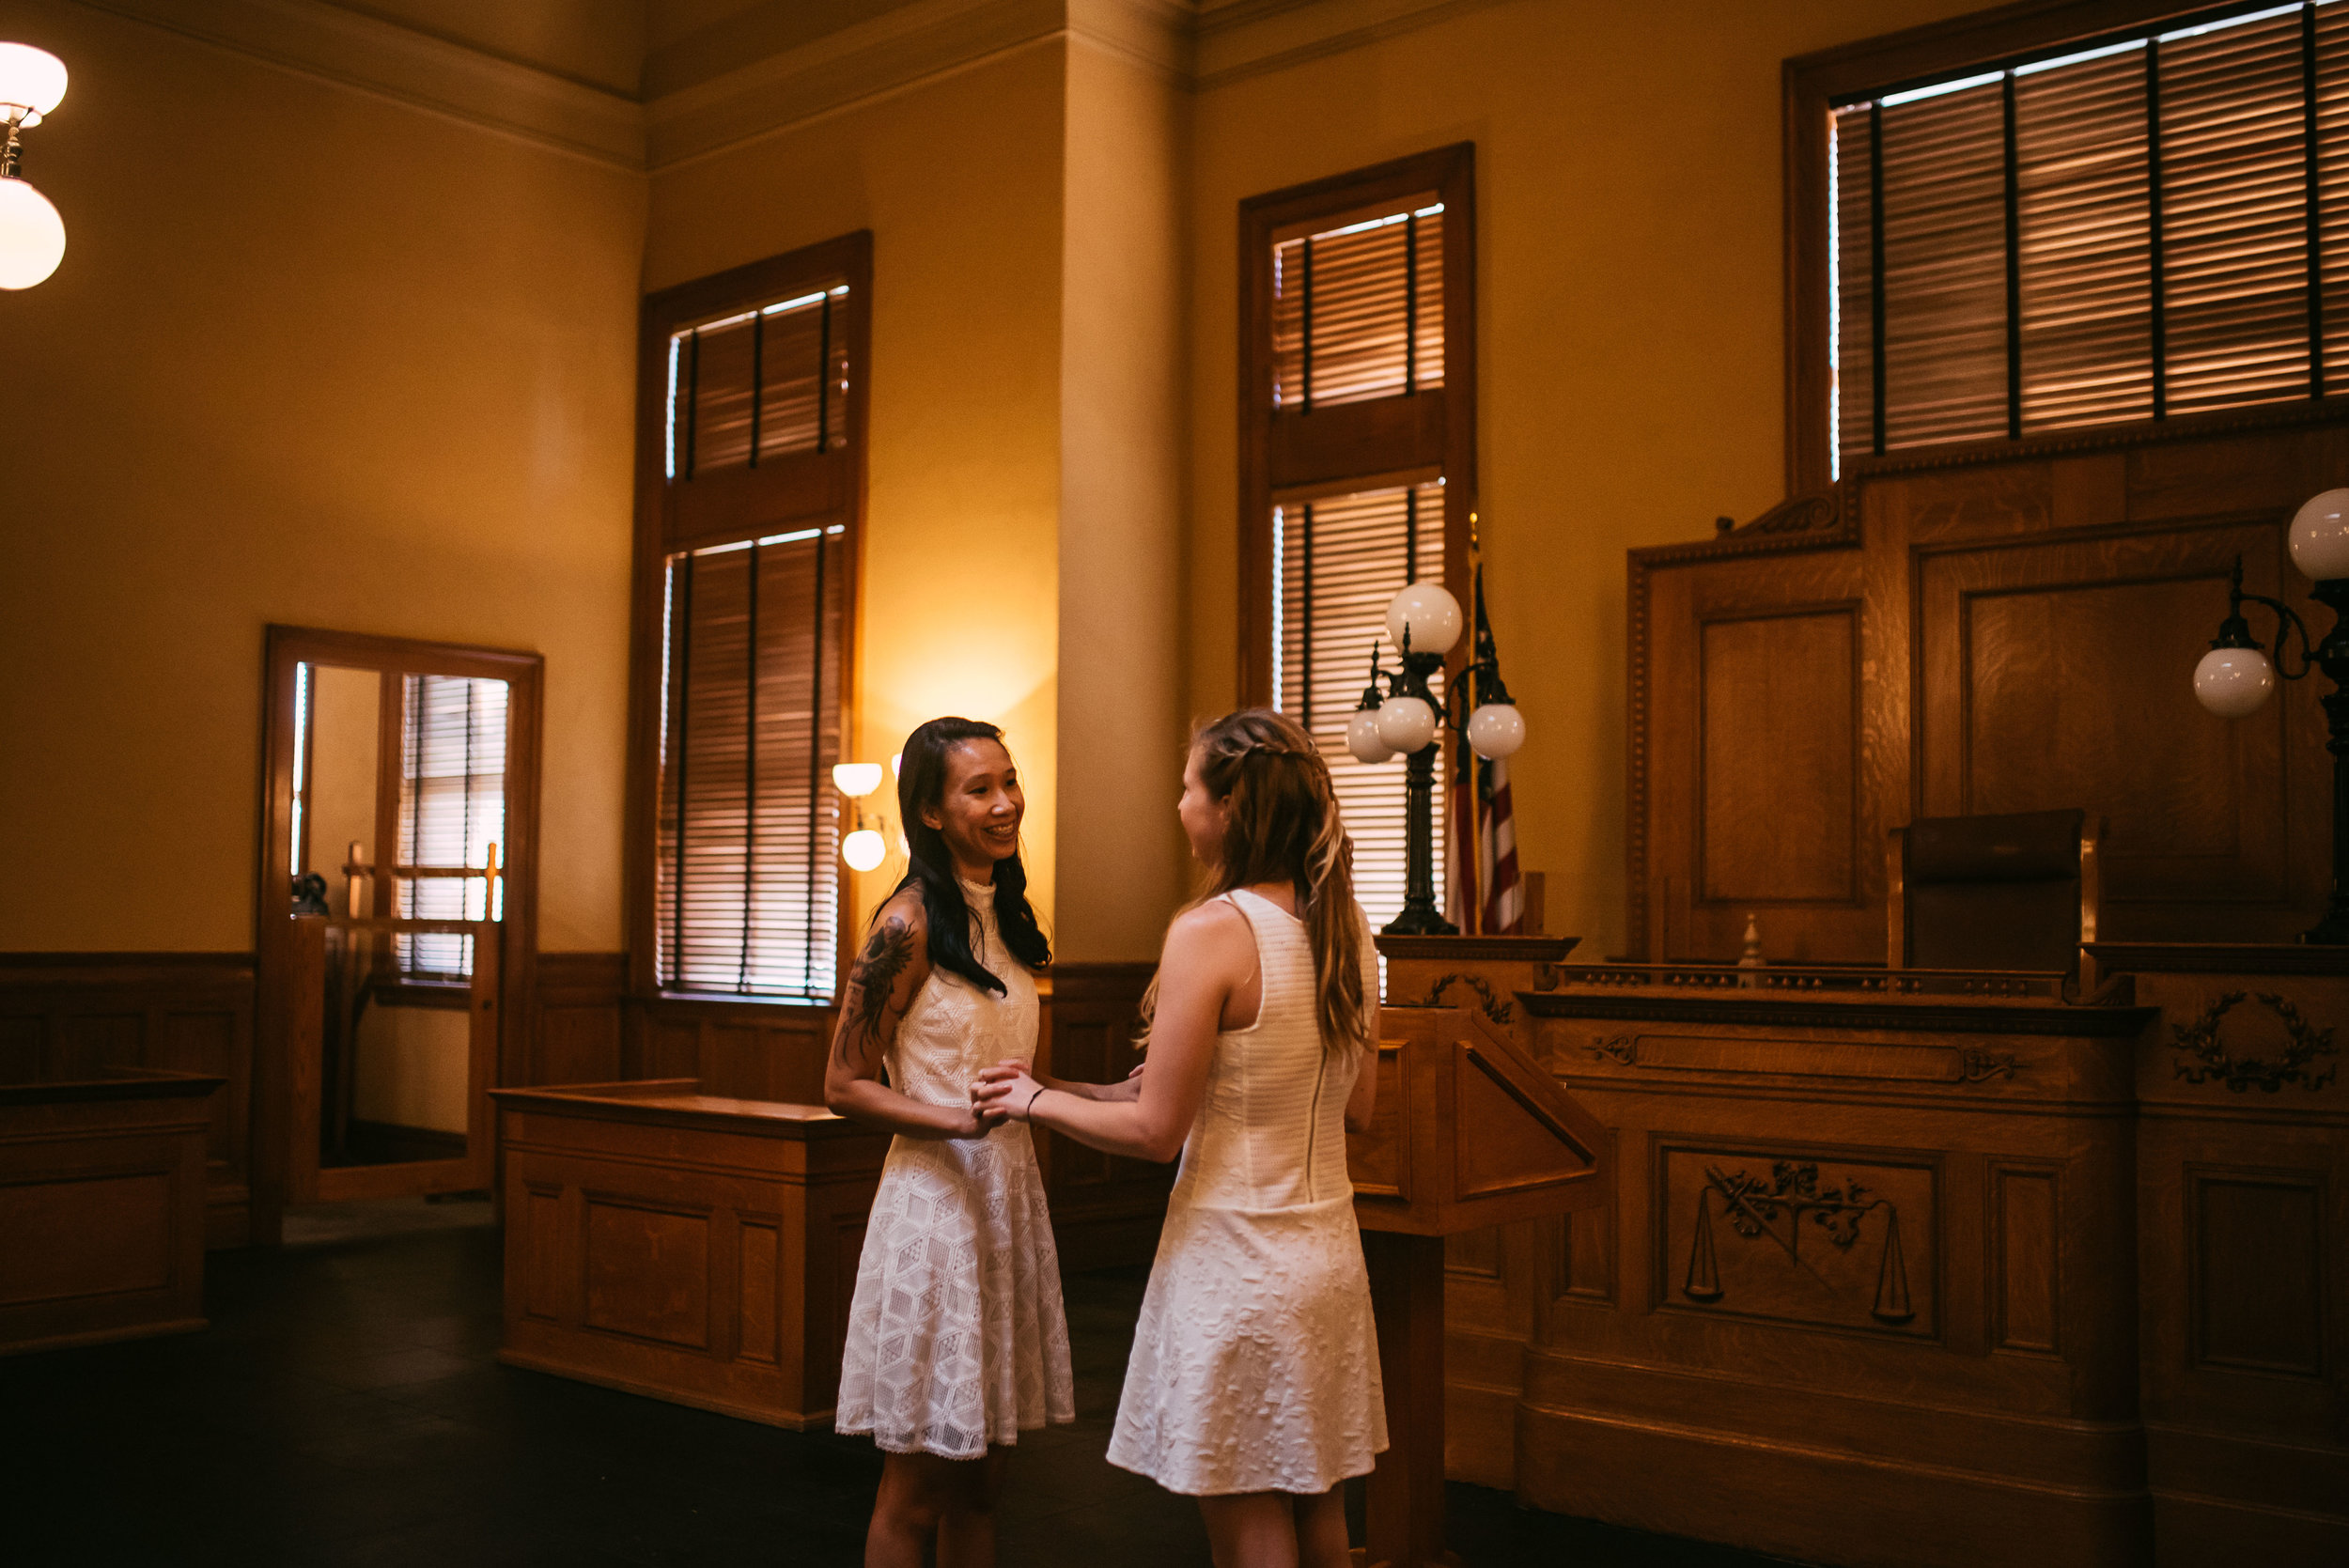 debbie-kelly-santa-ana-old-orange-county-courthouse-elopement-wedding-1-18.jpg